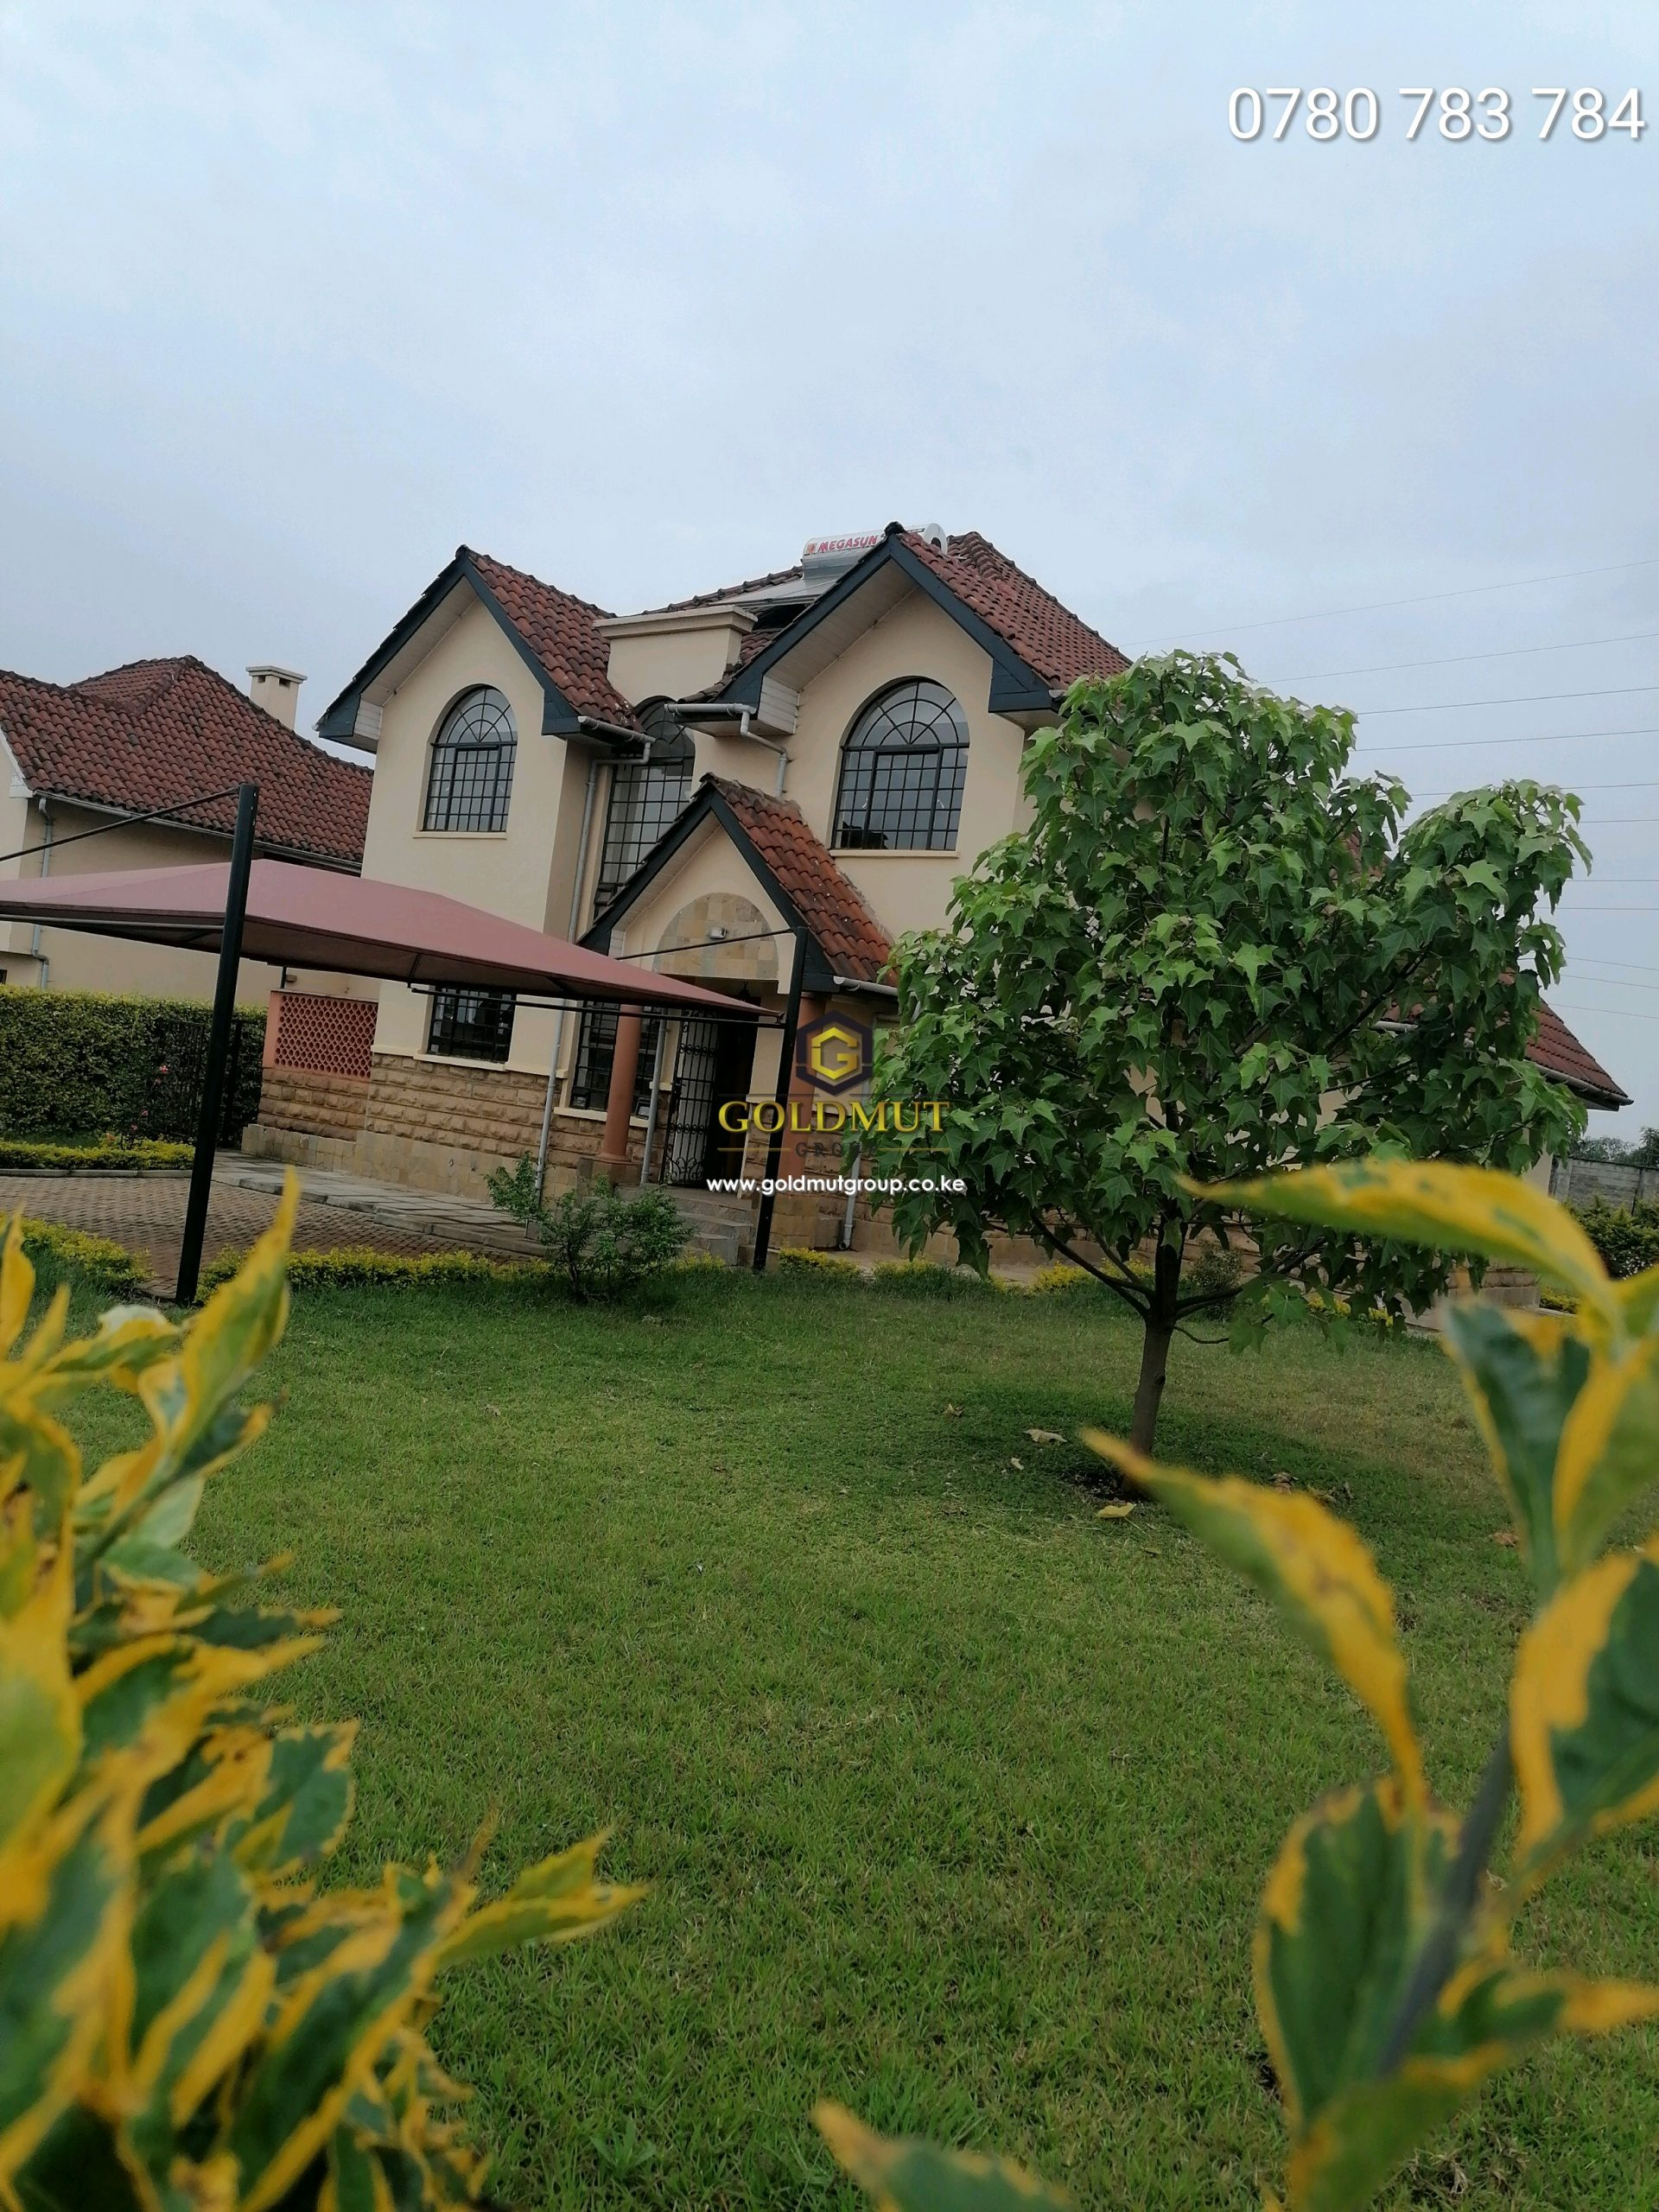 4 BEDROOM WITH DSQ FOR SALE IN REDHILL KIAMBU SITTED ON 1/4 ACRE